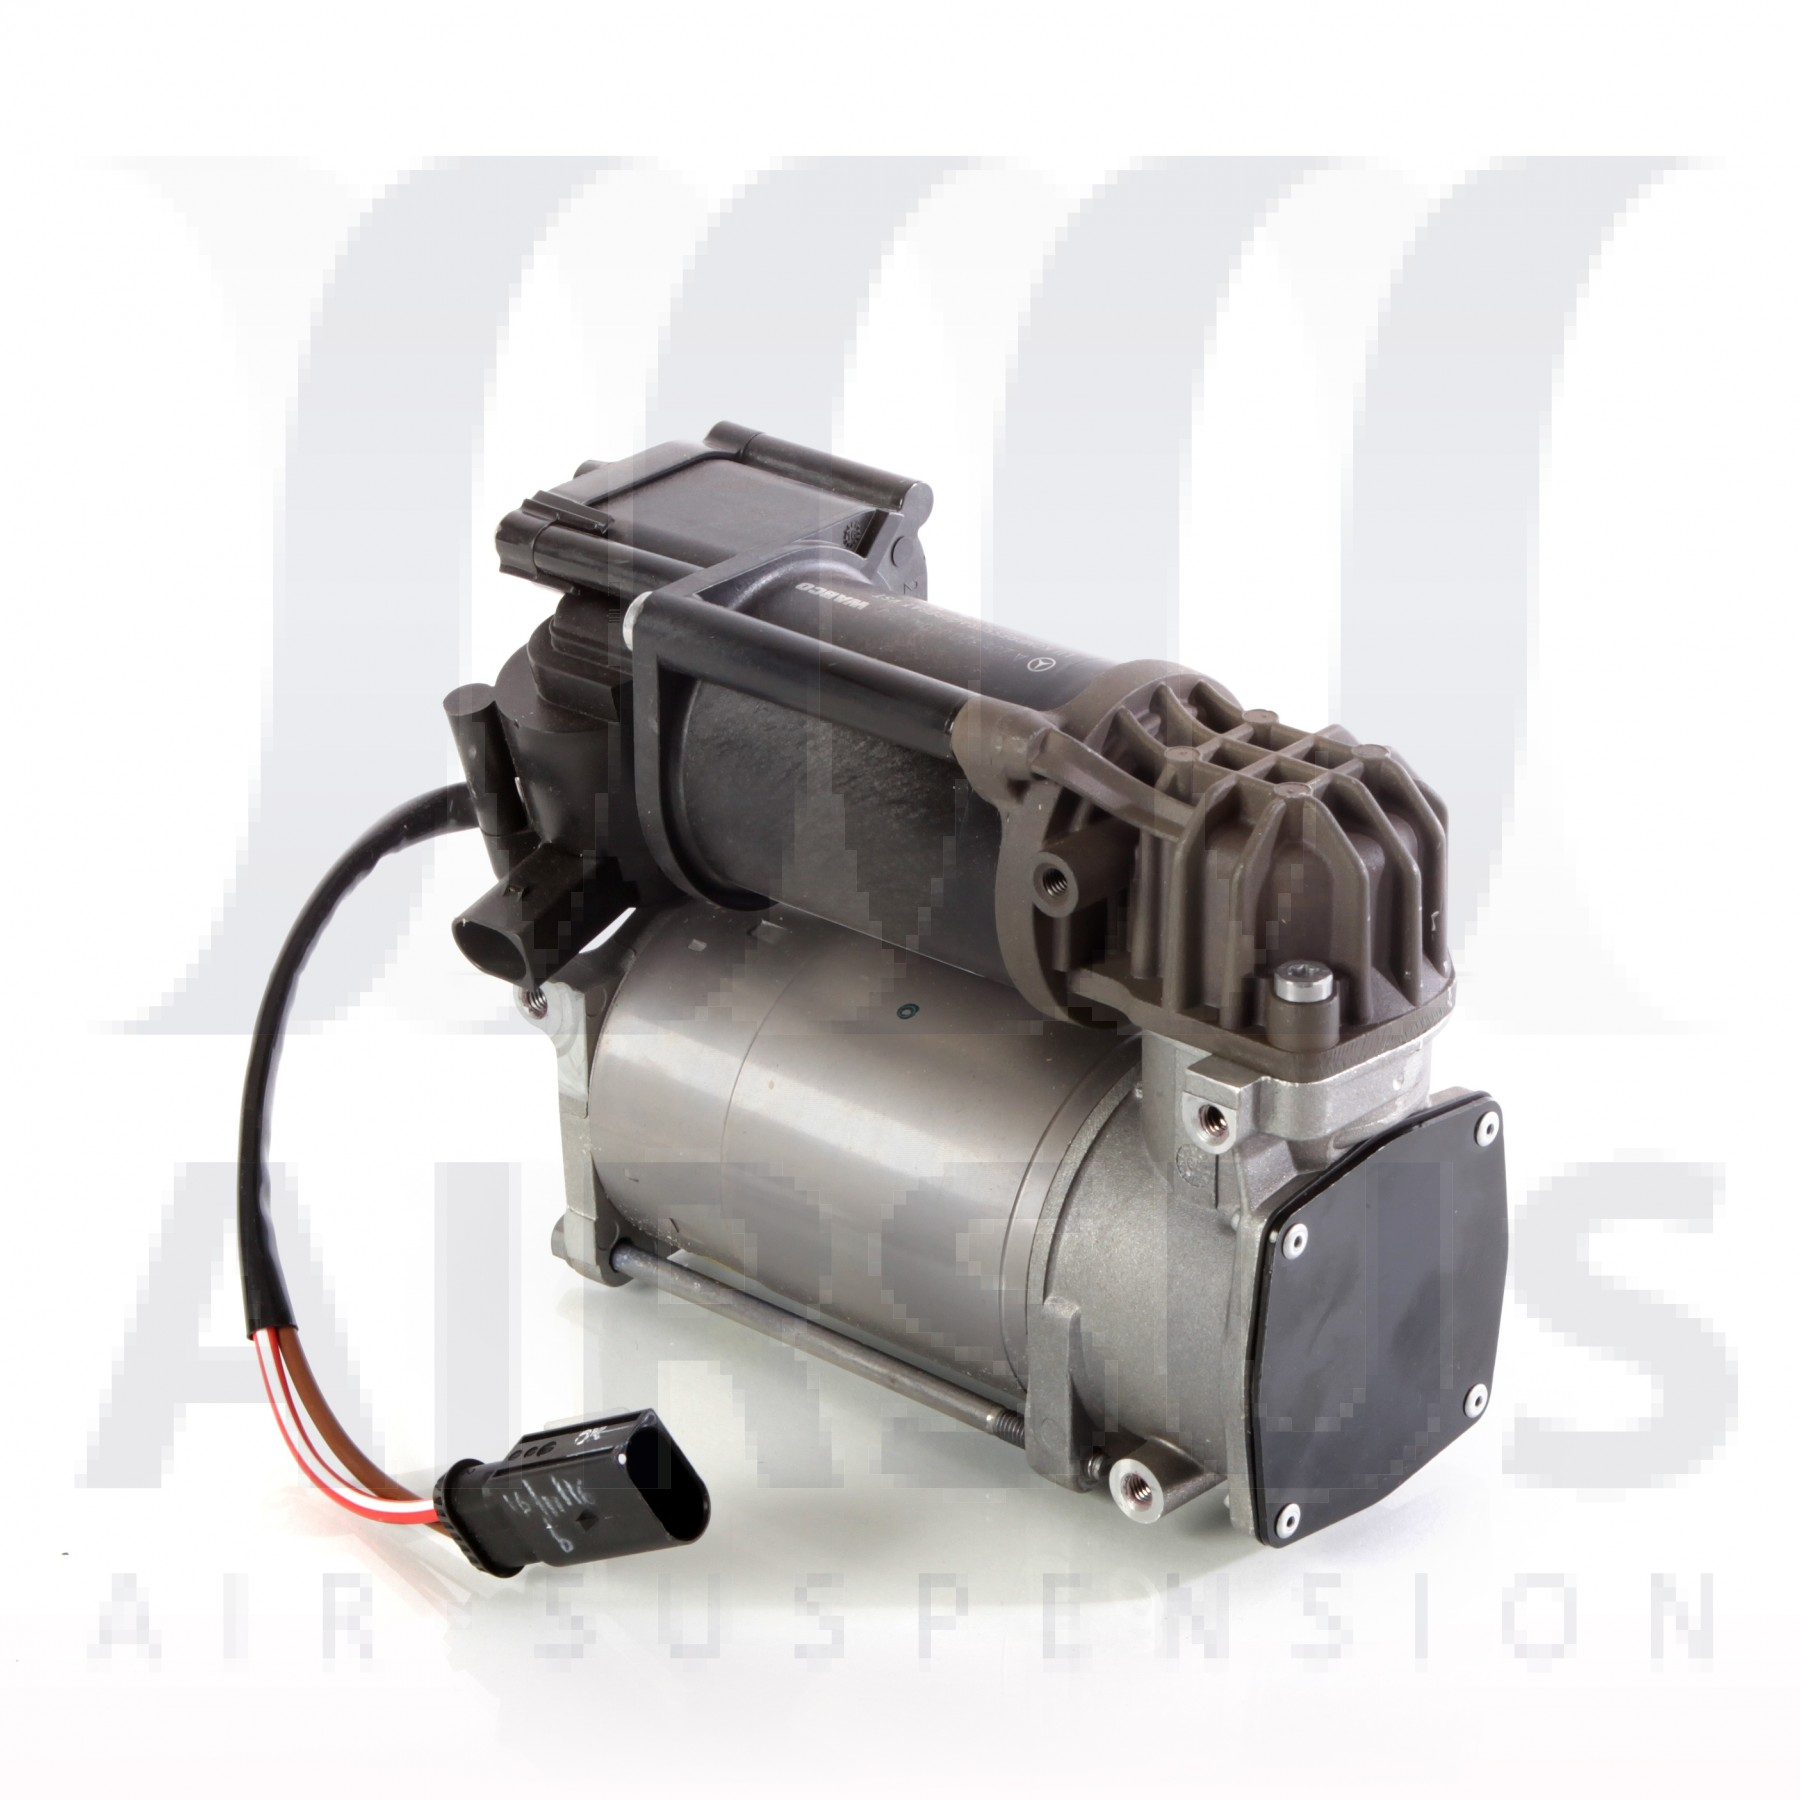 Mercedes C-Class W205 Airmatic Air Suspension Compressor A0993200004  A099320000480